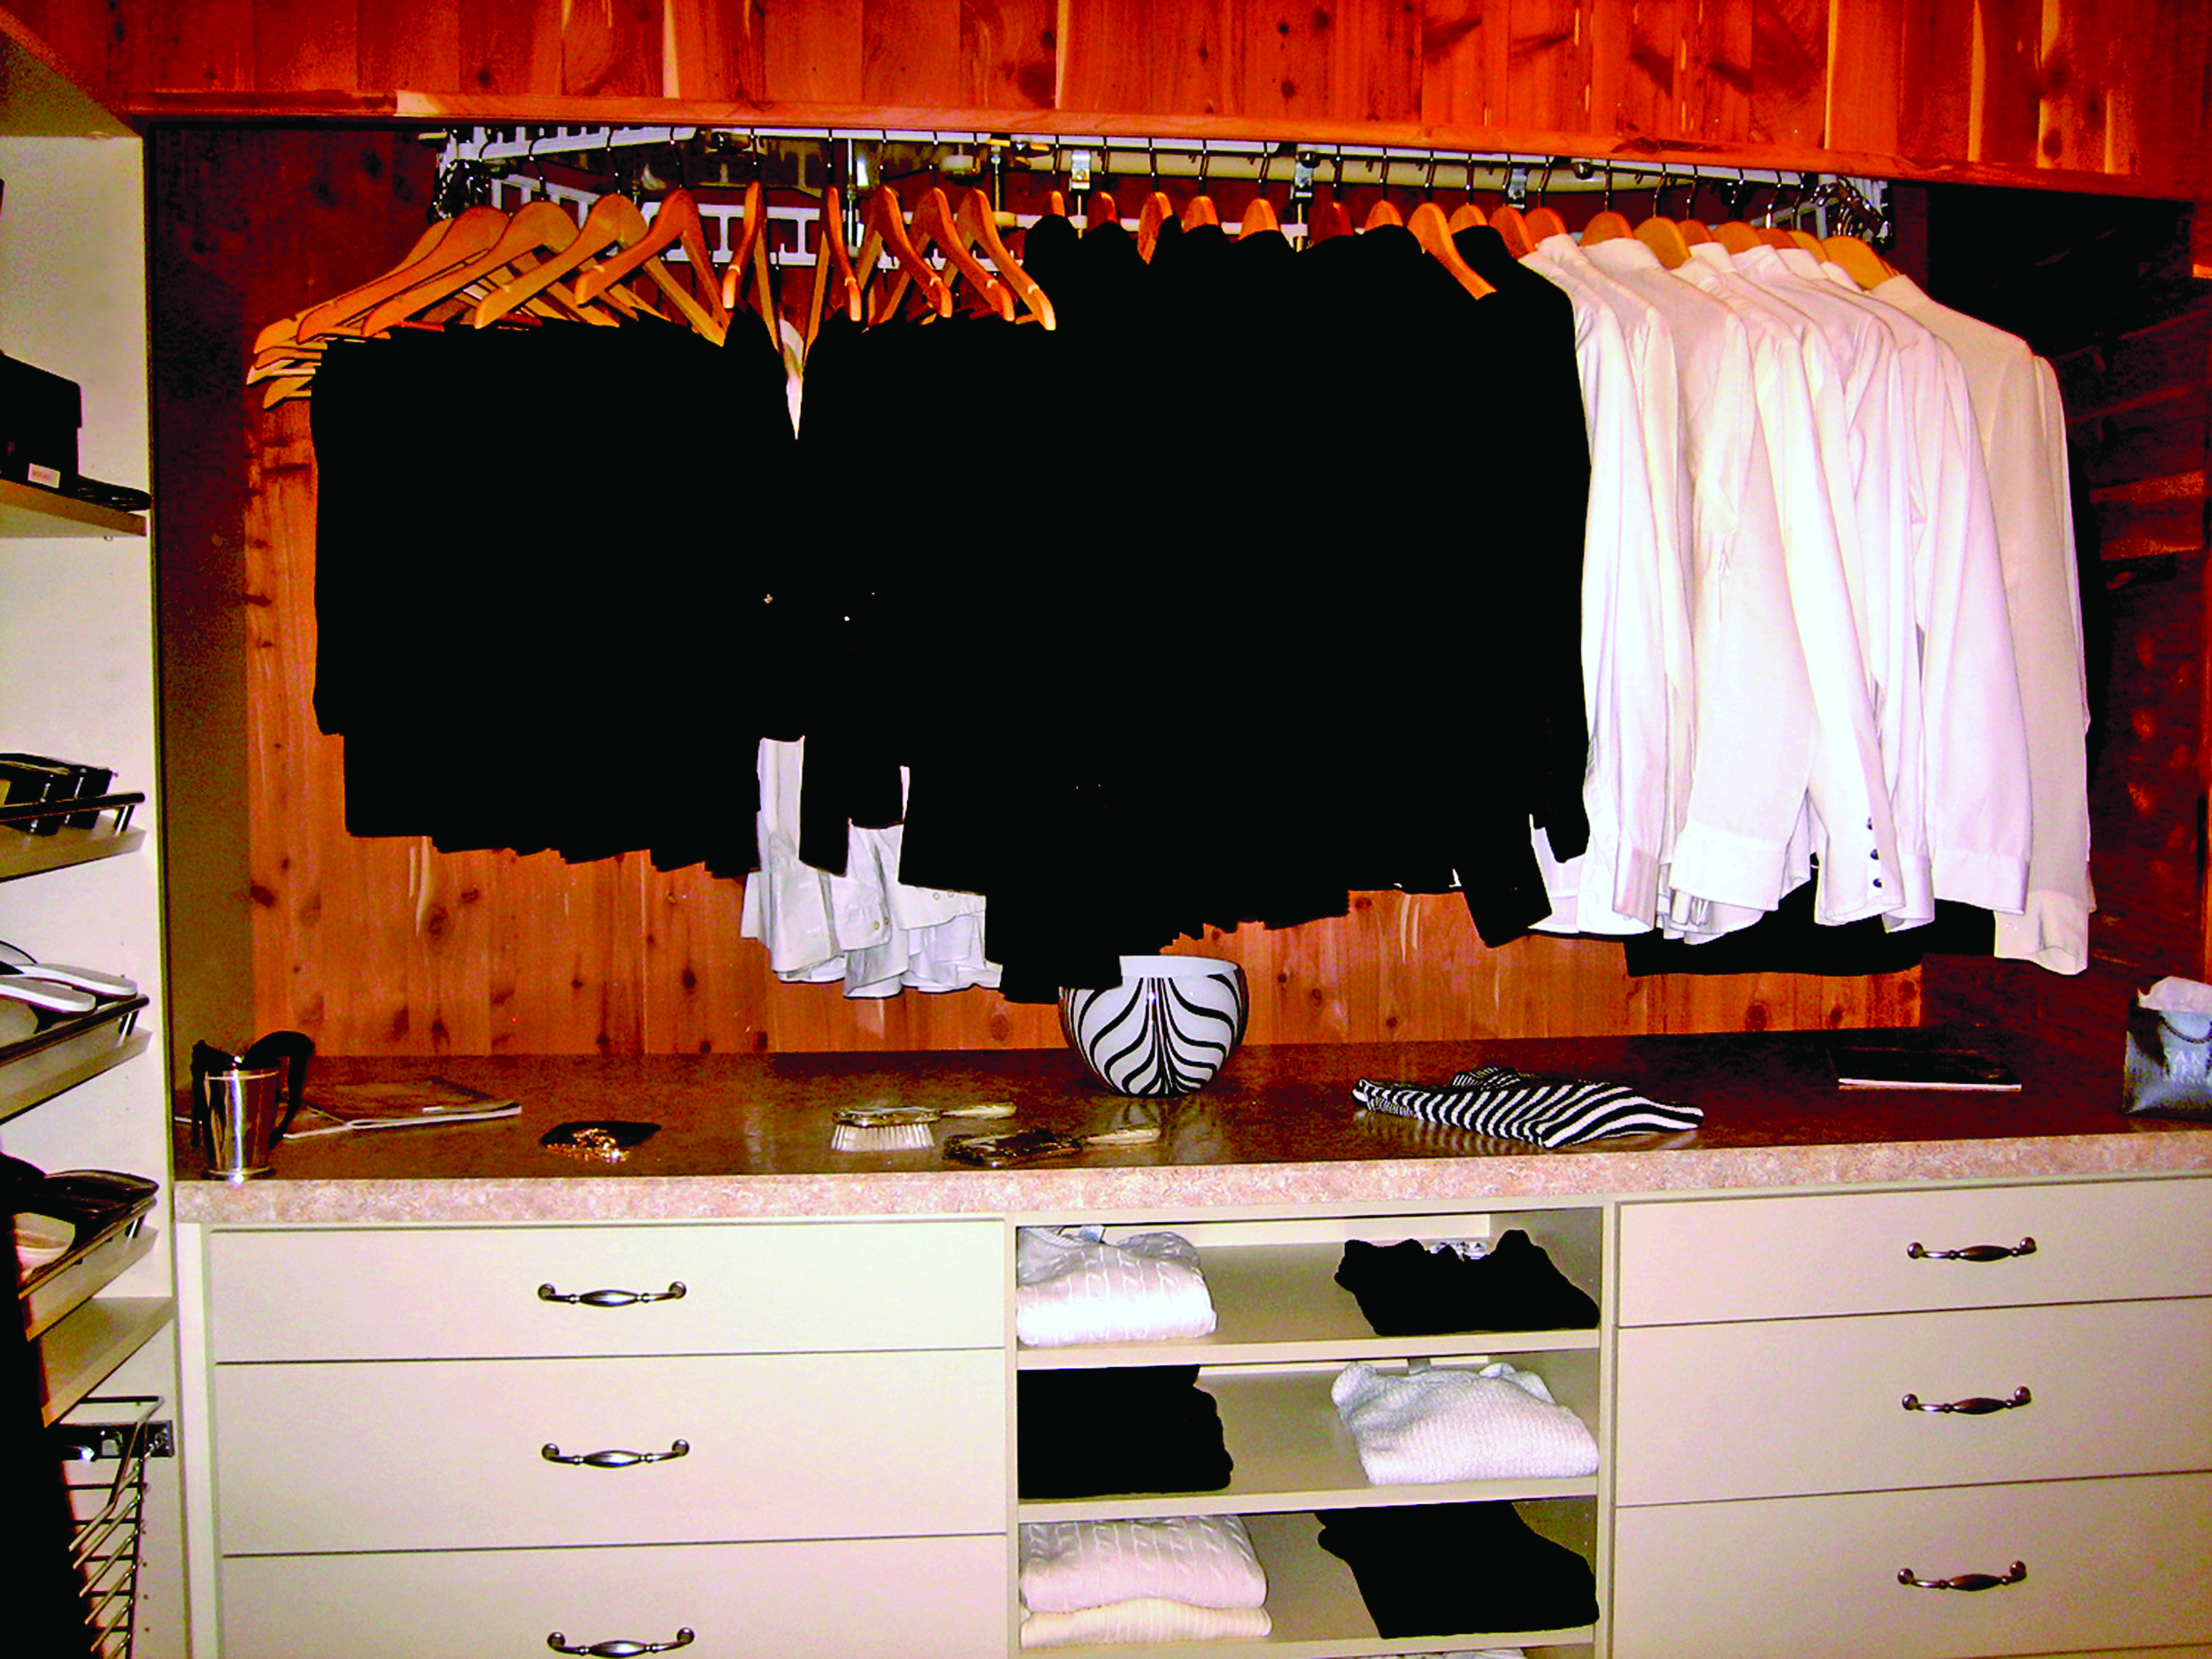 Luxe Wardrobe Automation Ceiling-Mounted Conveyor